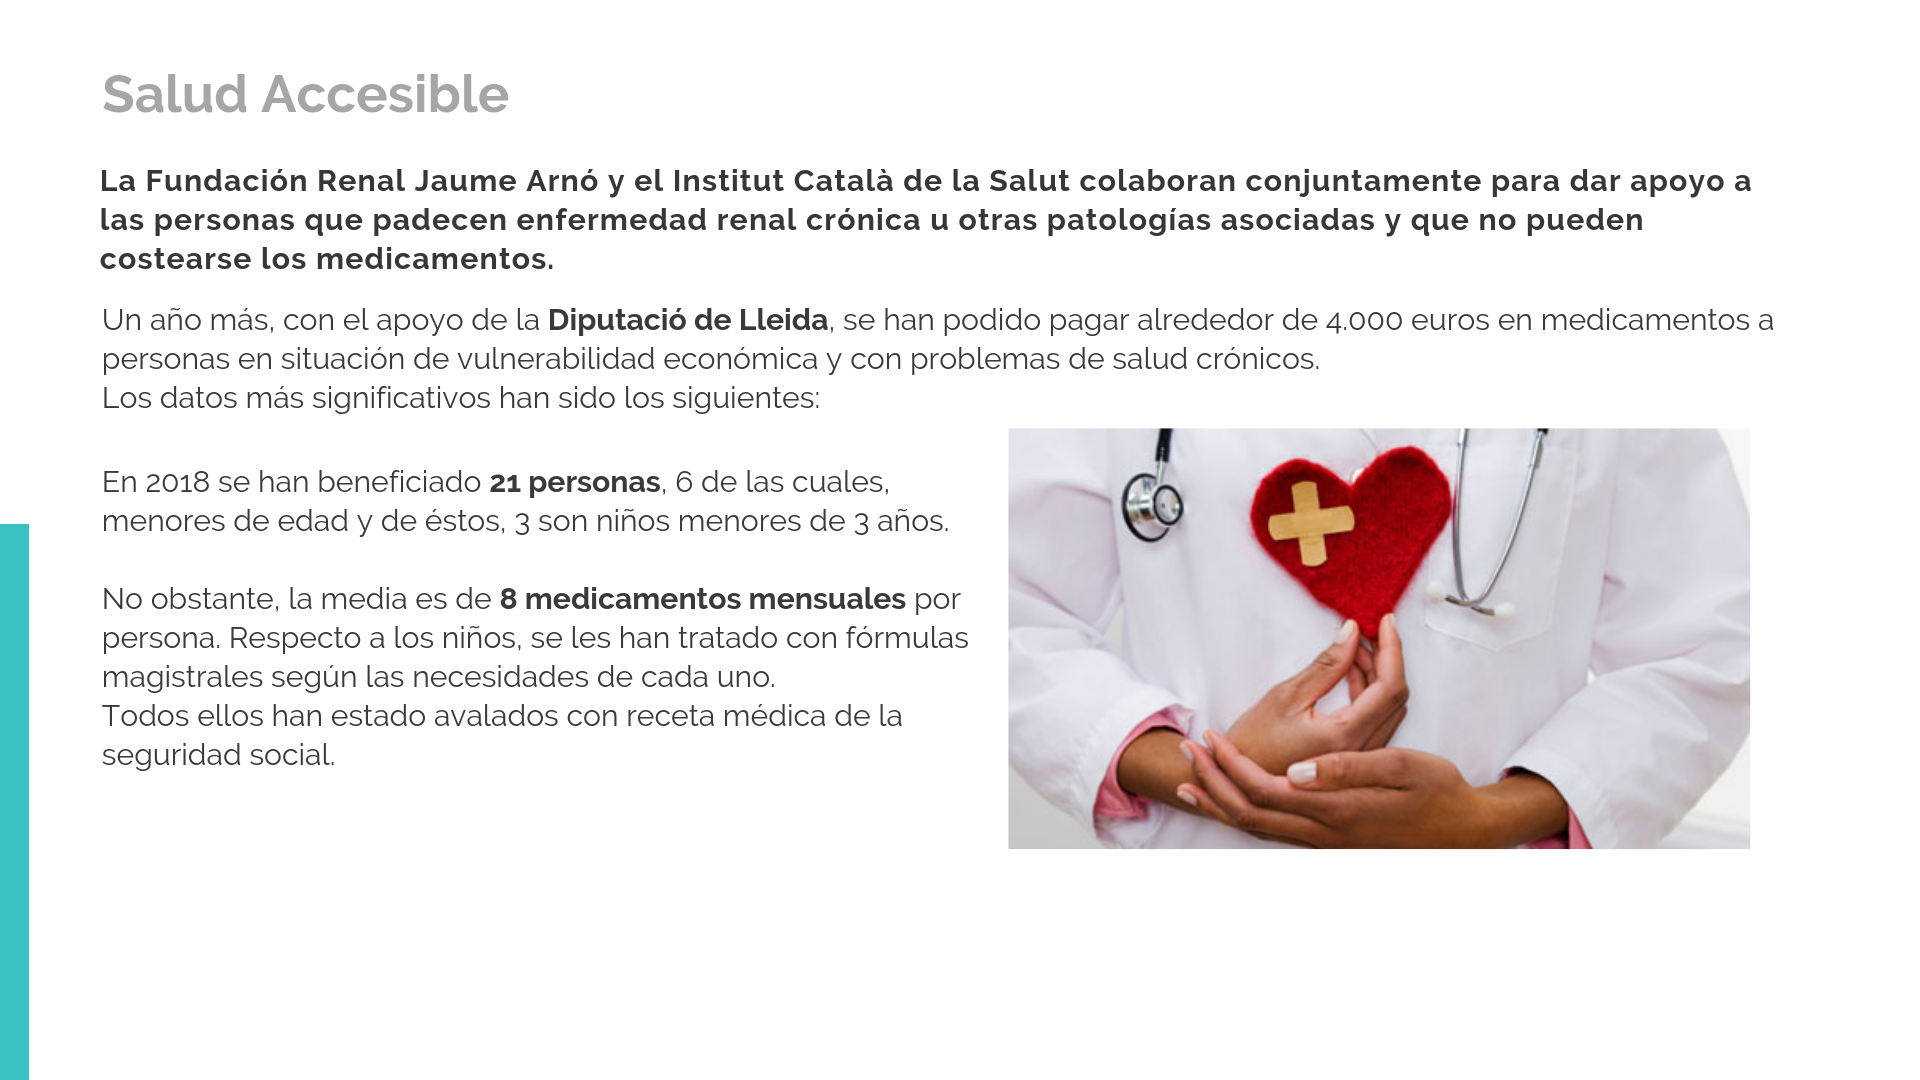 Salud accesible 2018